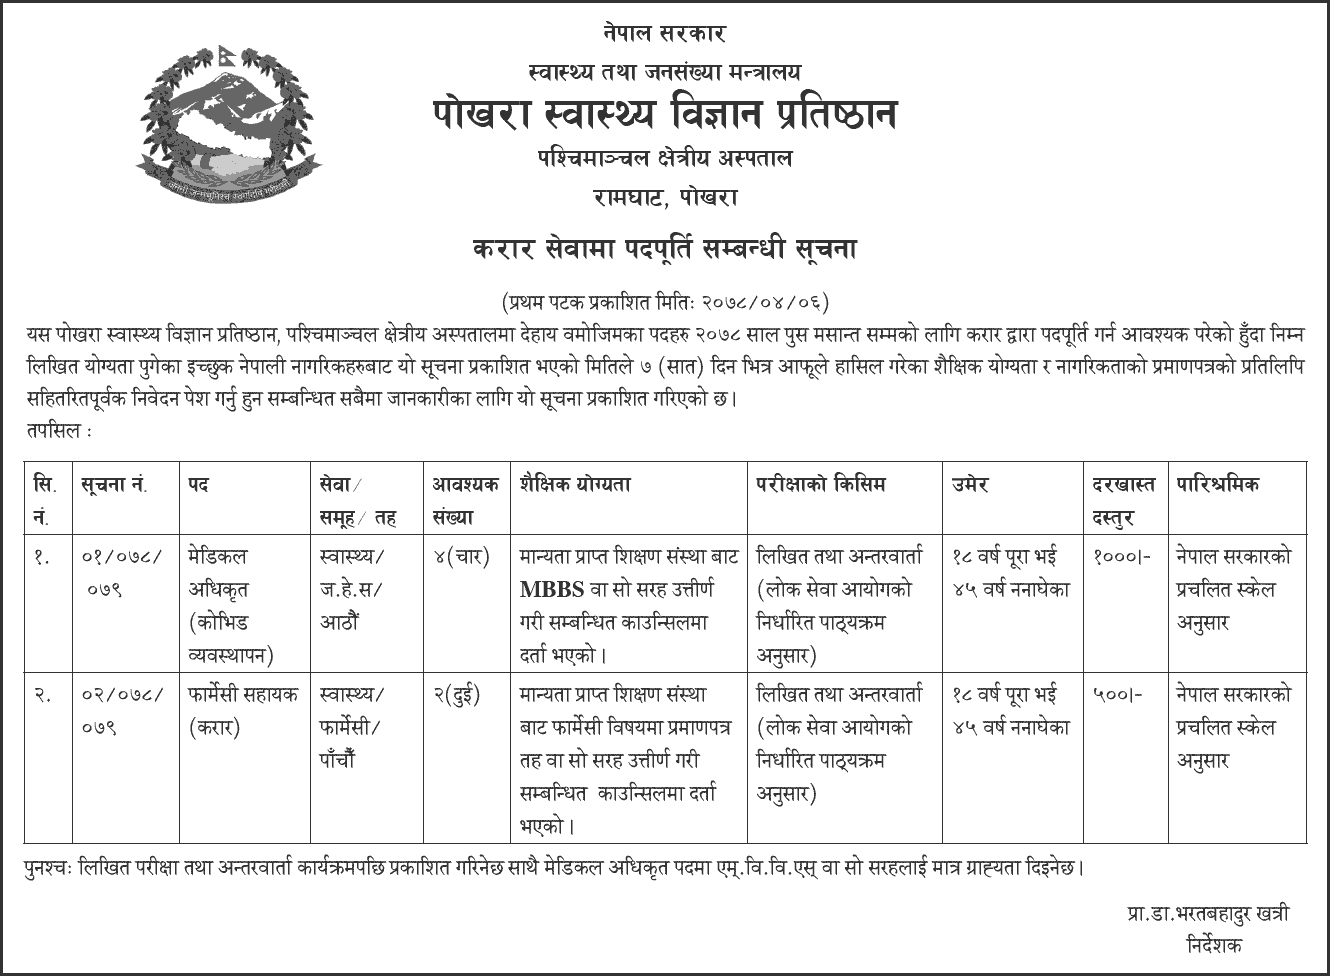 Pokhara Academy of Health Sciences Vacancy Announcement